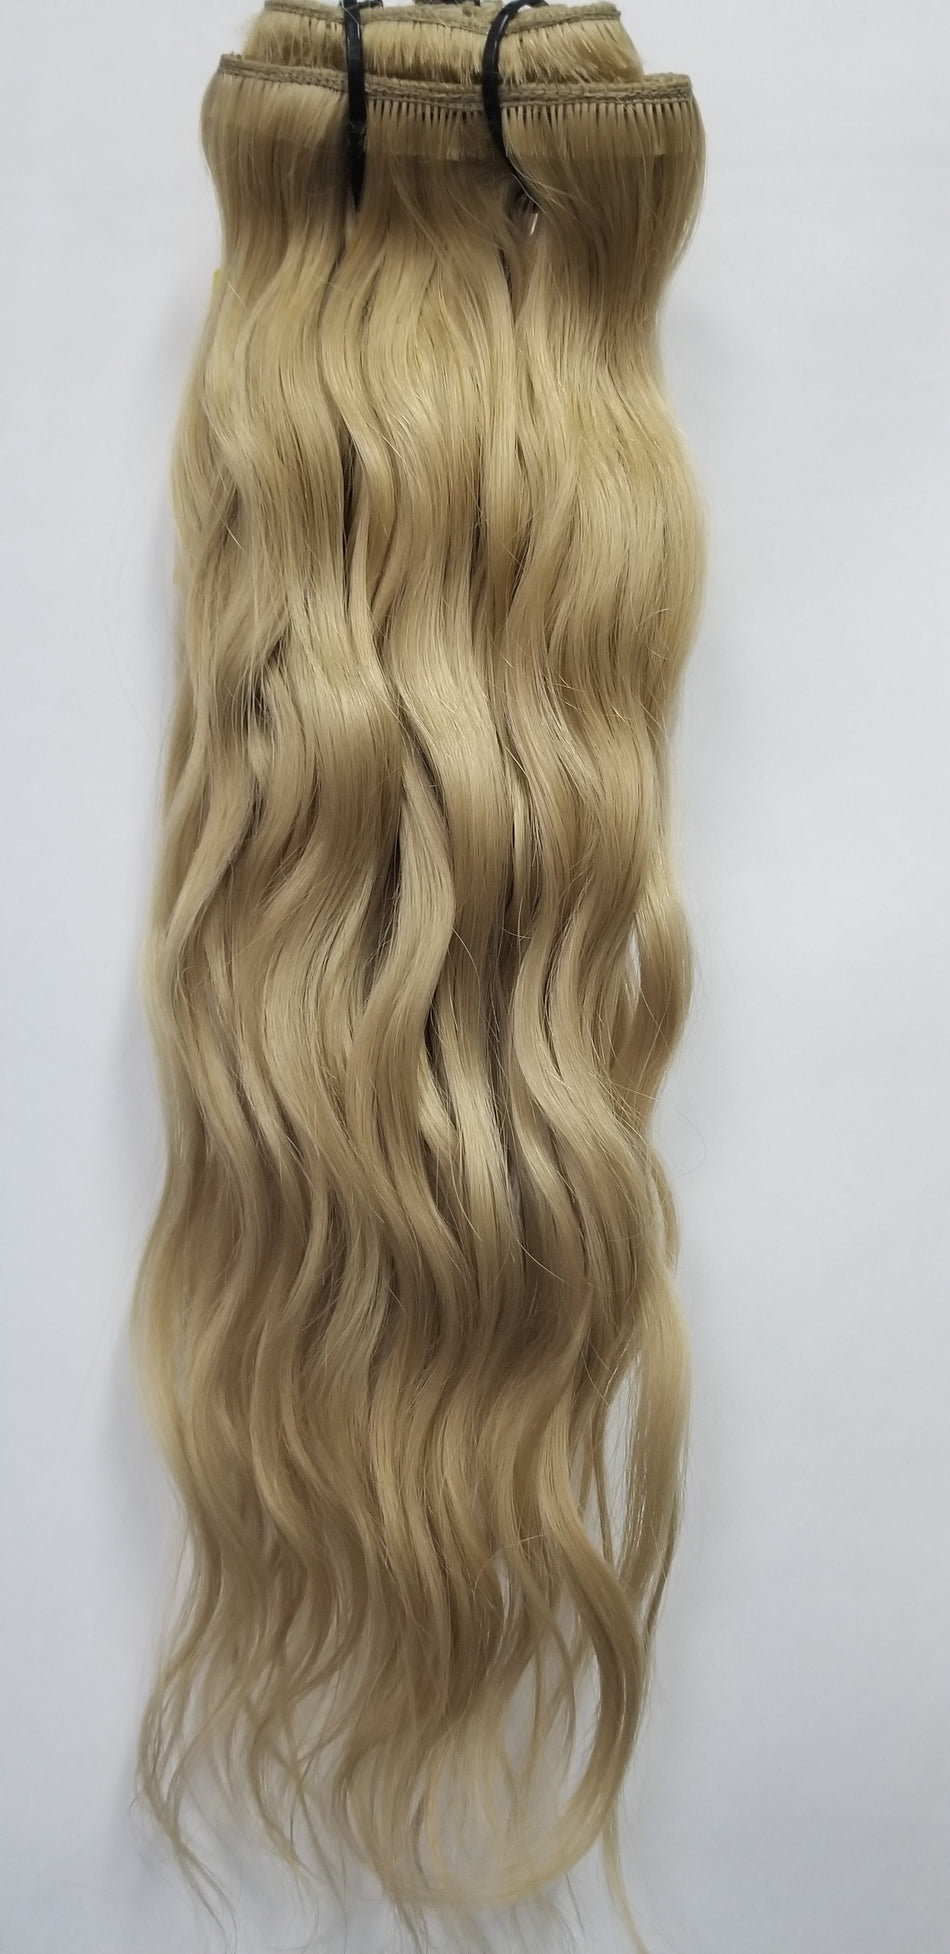 4 Piece CLIP-IN Set - Remy Pure Natural Wavy Color #18 Golden Blonde